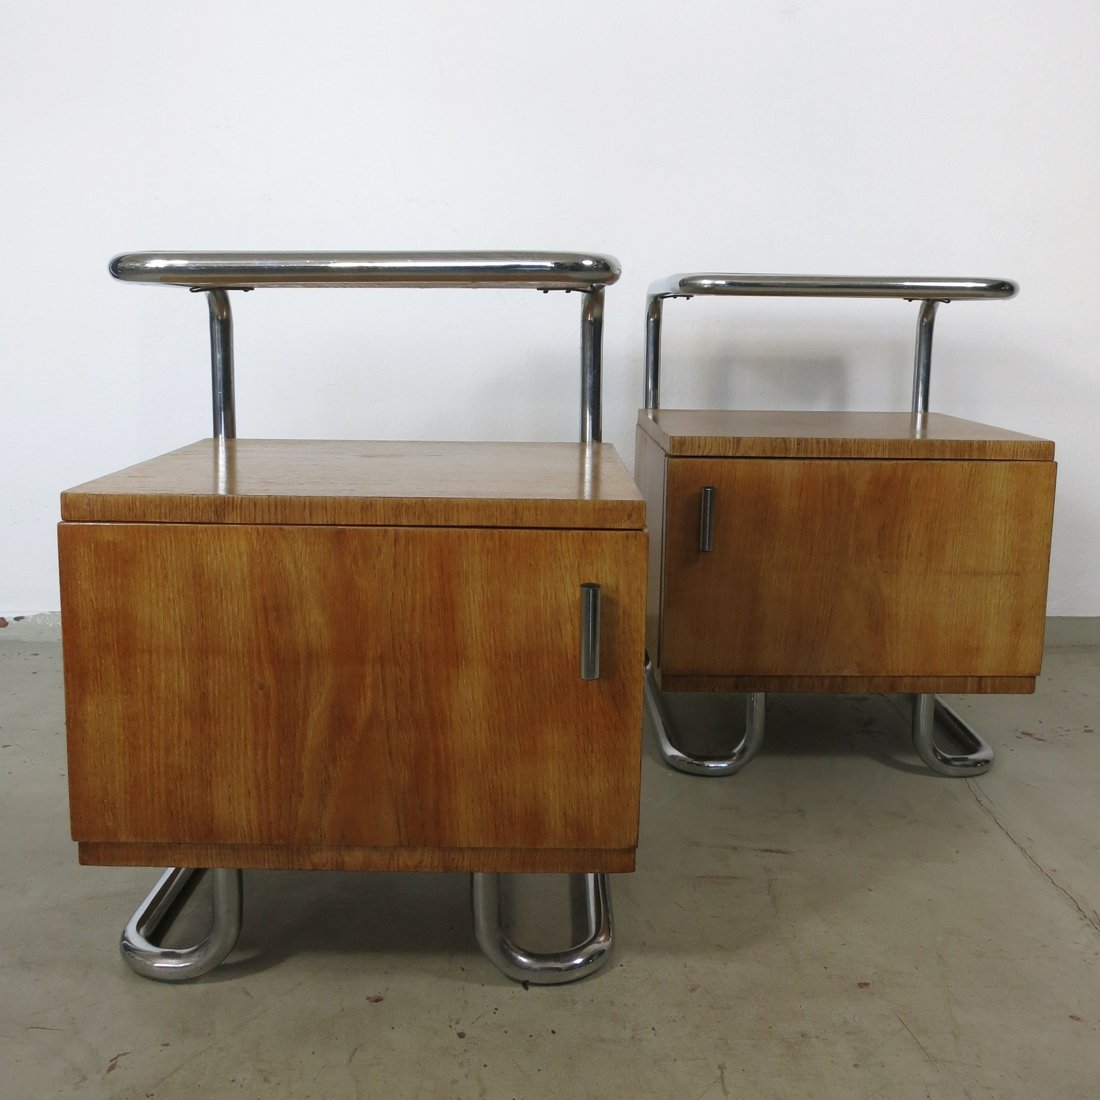 Set Of Two Bedside Tables By Kovona Karviná Czech Republic 1950s 94945